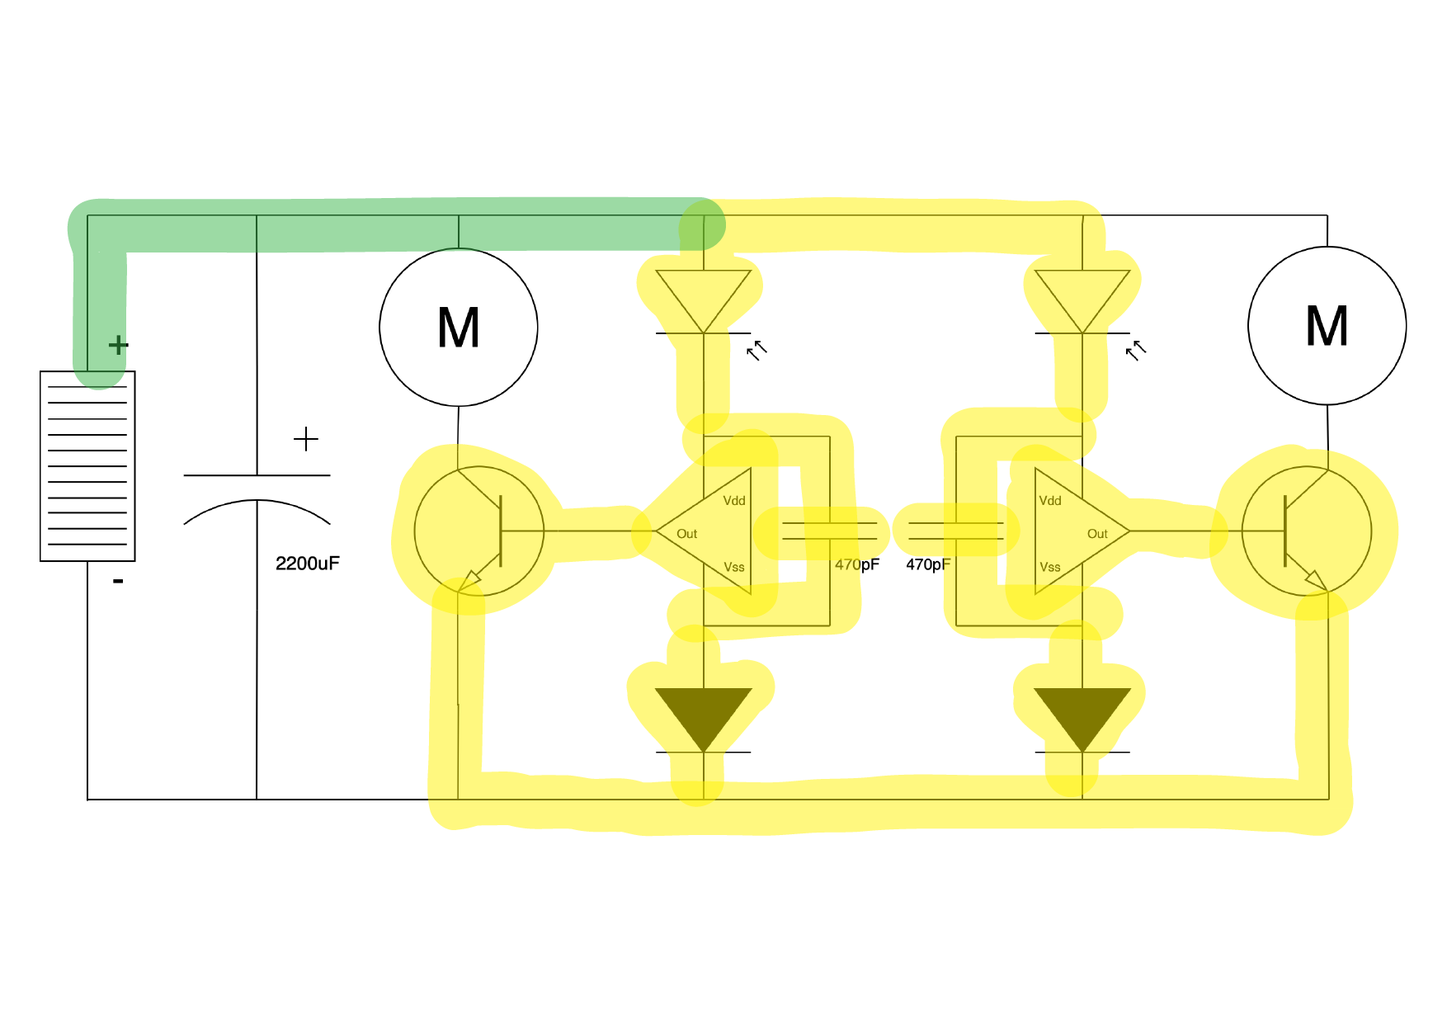 Freeforming the Circuit 10: Connecting Positive to the Solar Panel